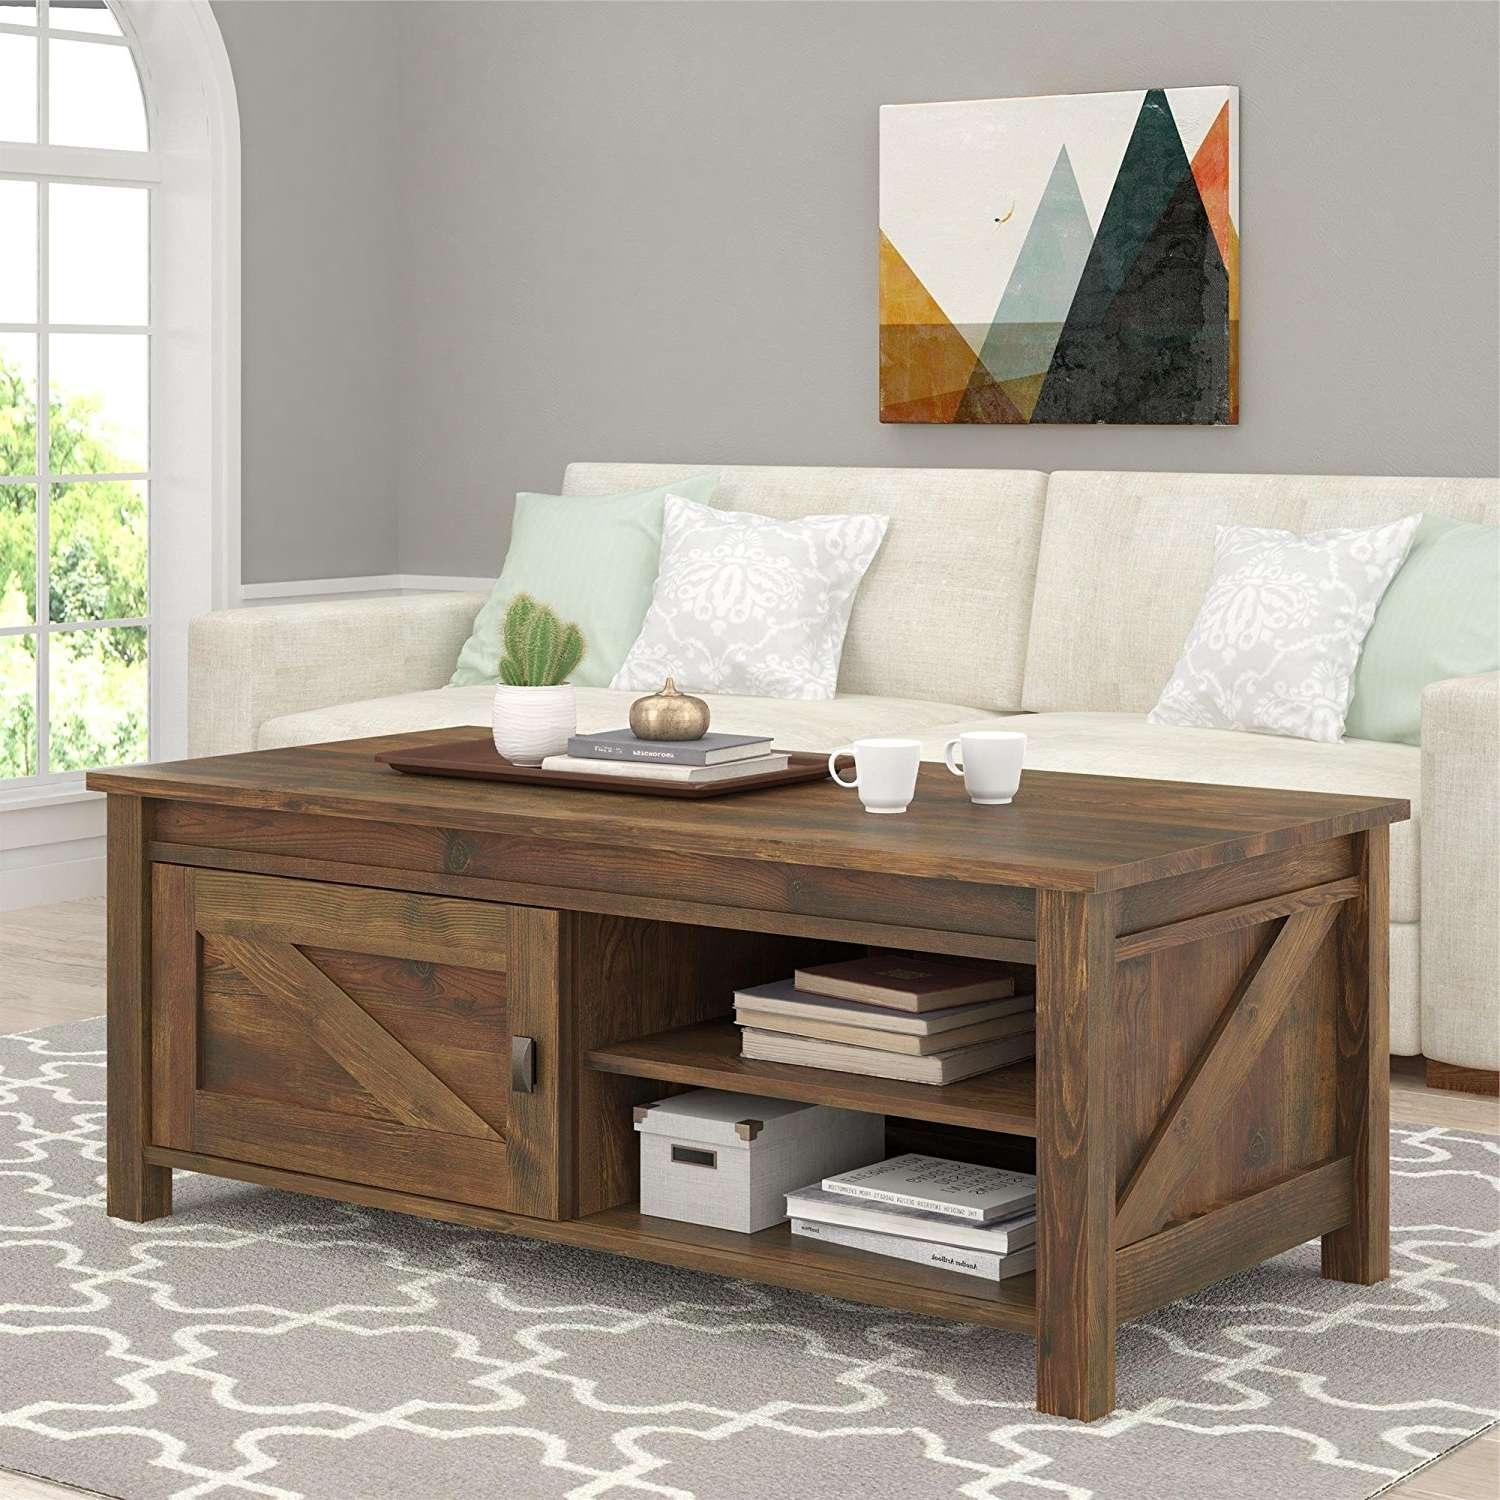 Coffee Tables : Sets With Matching Tv Stand Piece Living Room For Trendy Matching Tv Unit And Coffee Tables (View 7 of 20)